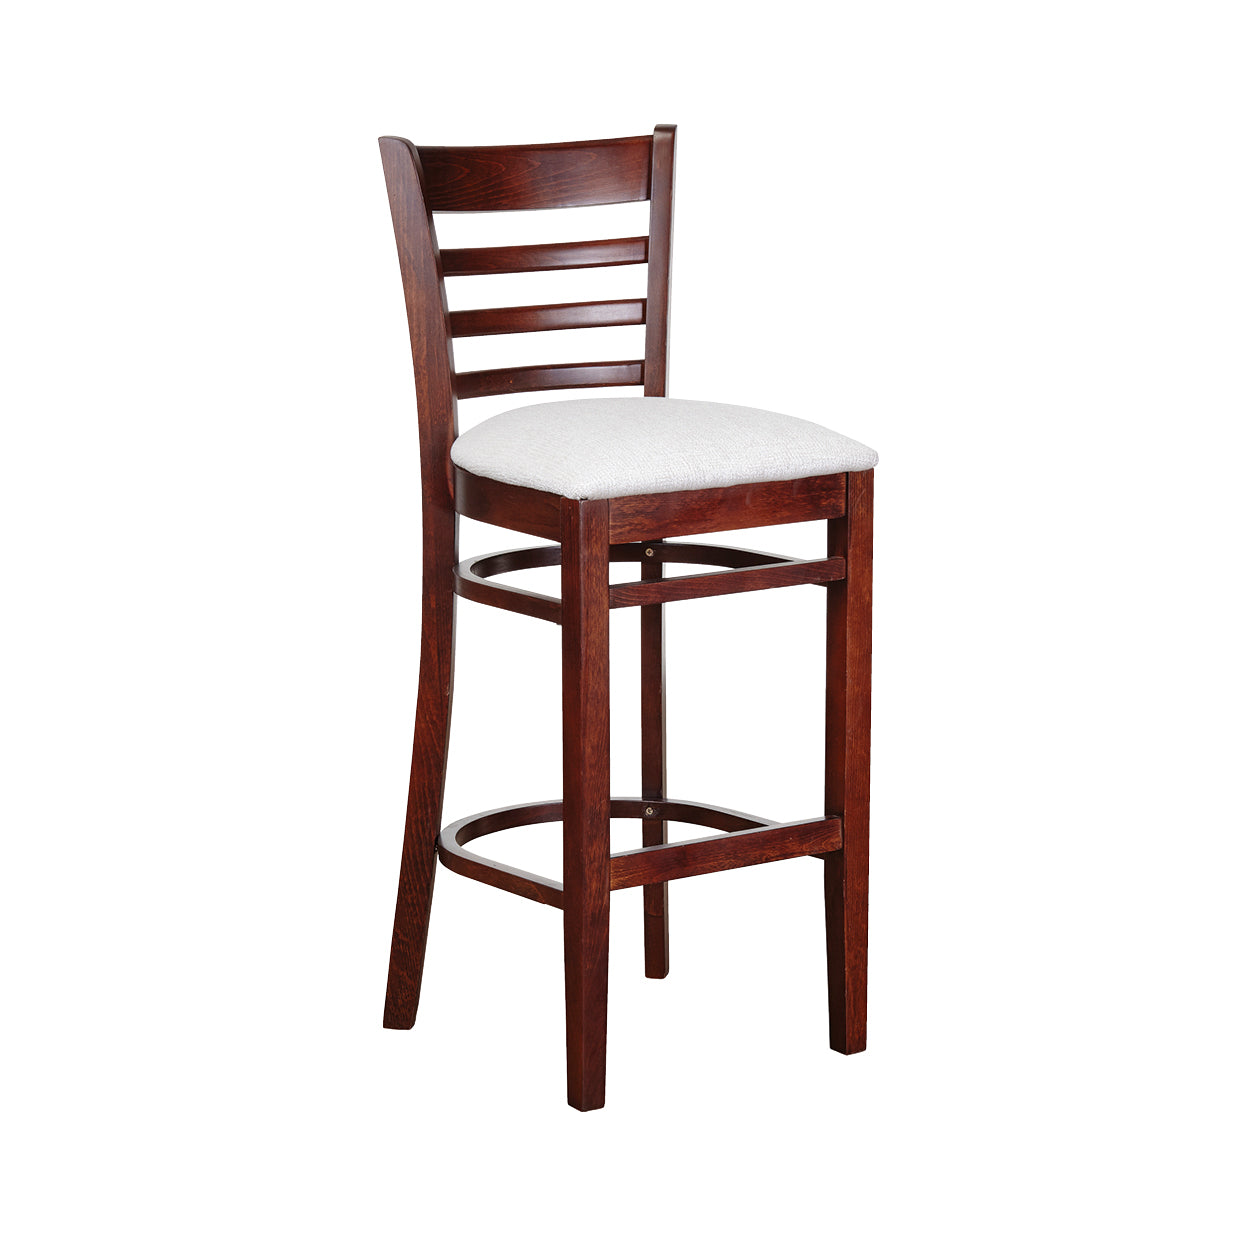 Hedcor 005 Bar chair